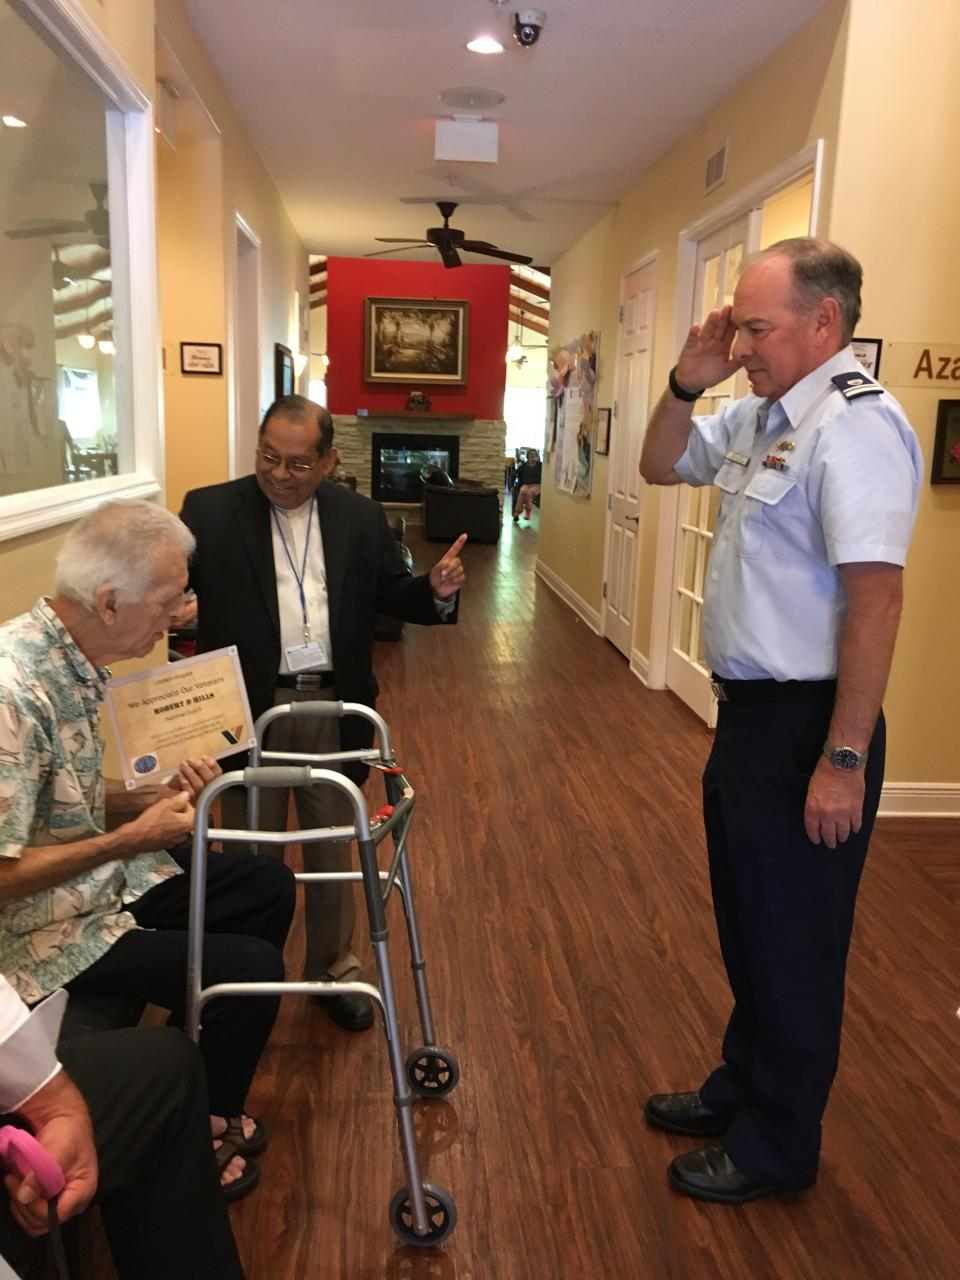 lifepath hospice chaplain mathai abraham performs we honor veterans pinning ceremony for a veteran